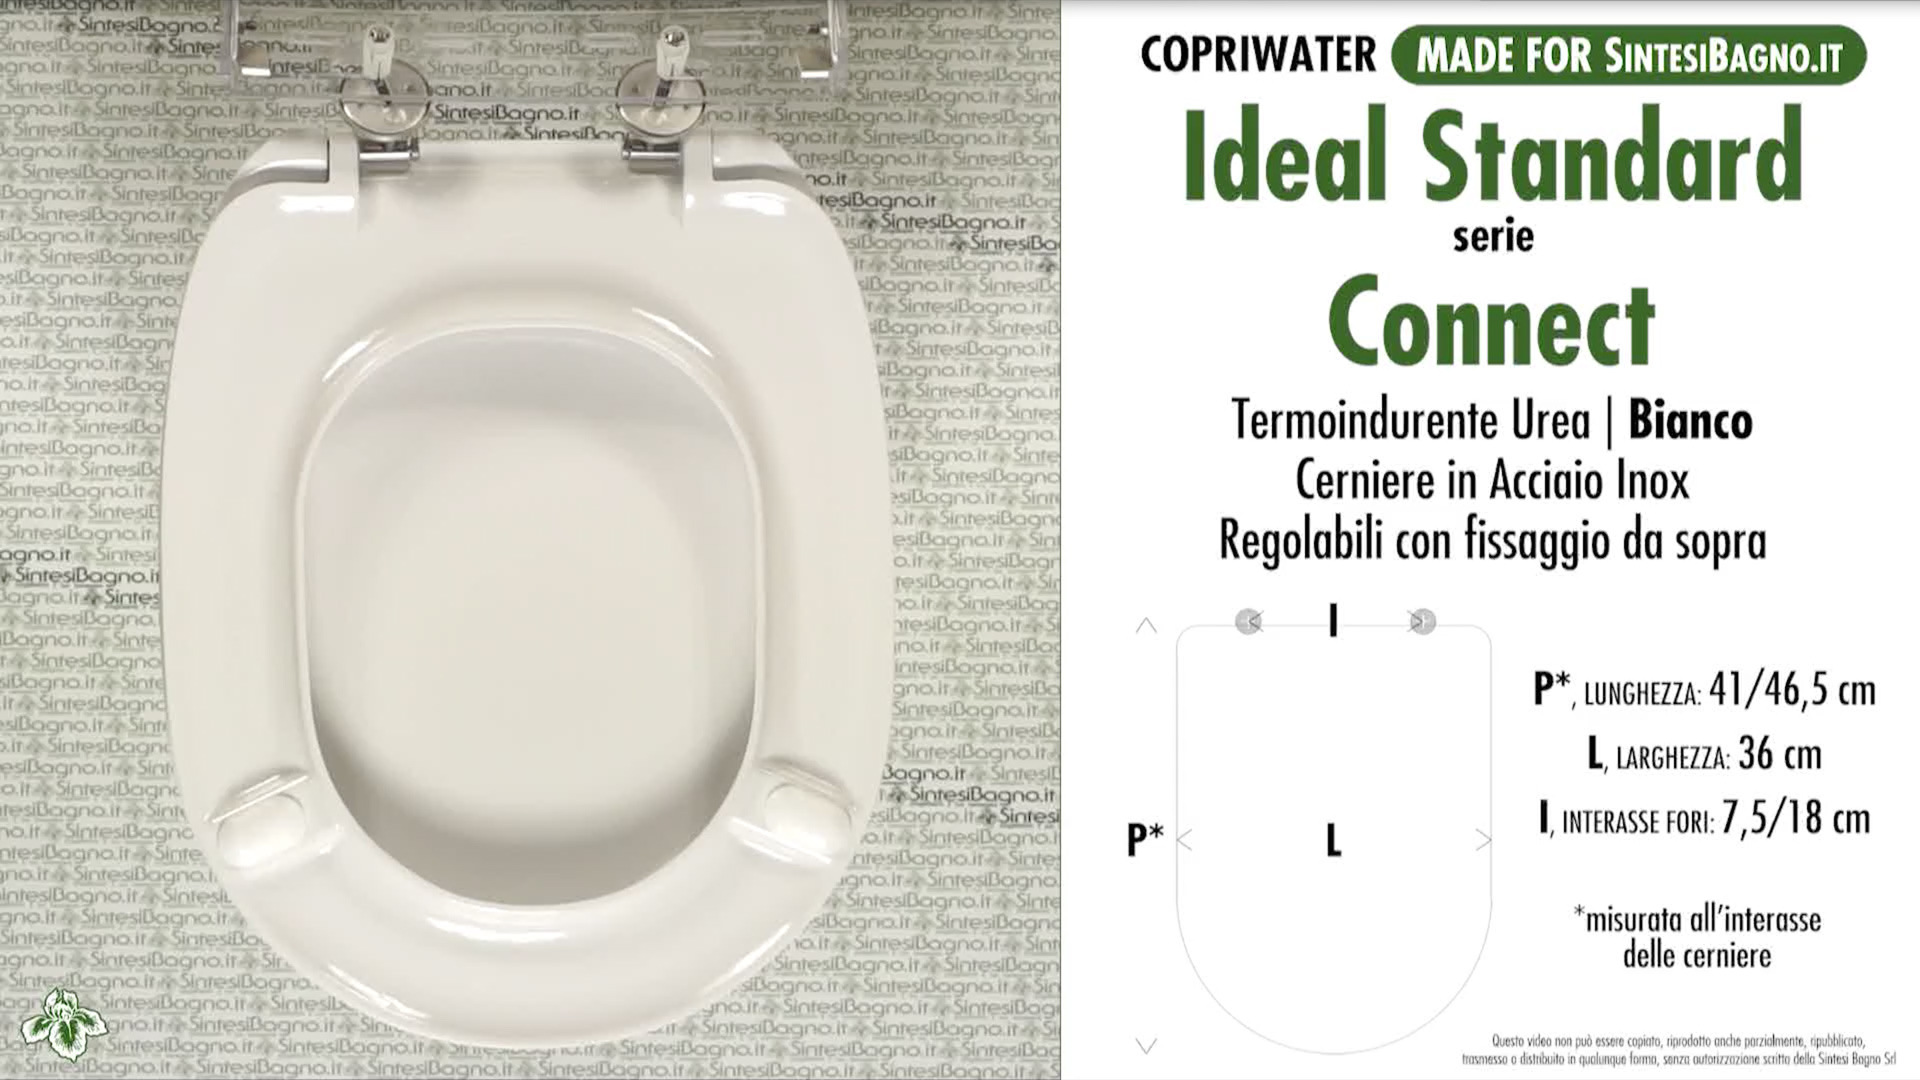 Copriwater. CONNECT. Ideal standard. SOFT CLOSE. Dedicato. BIANCO. Termoindurente